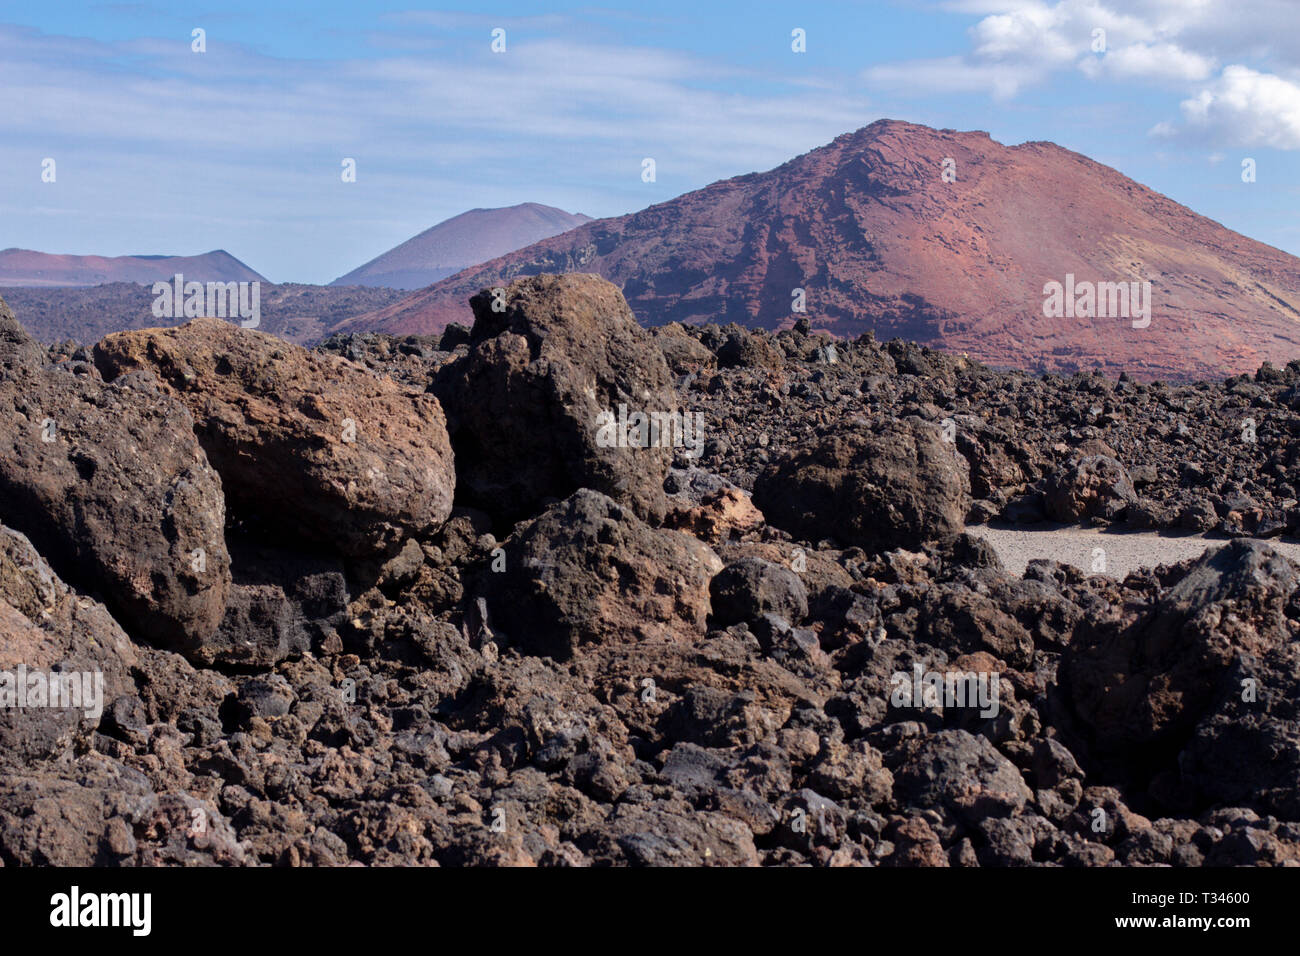 Volcanic landscape of Janubio mountains at Lanzarote - Stock Image